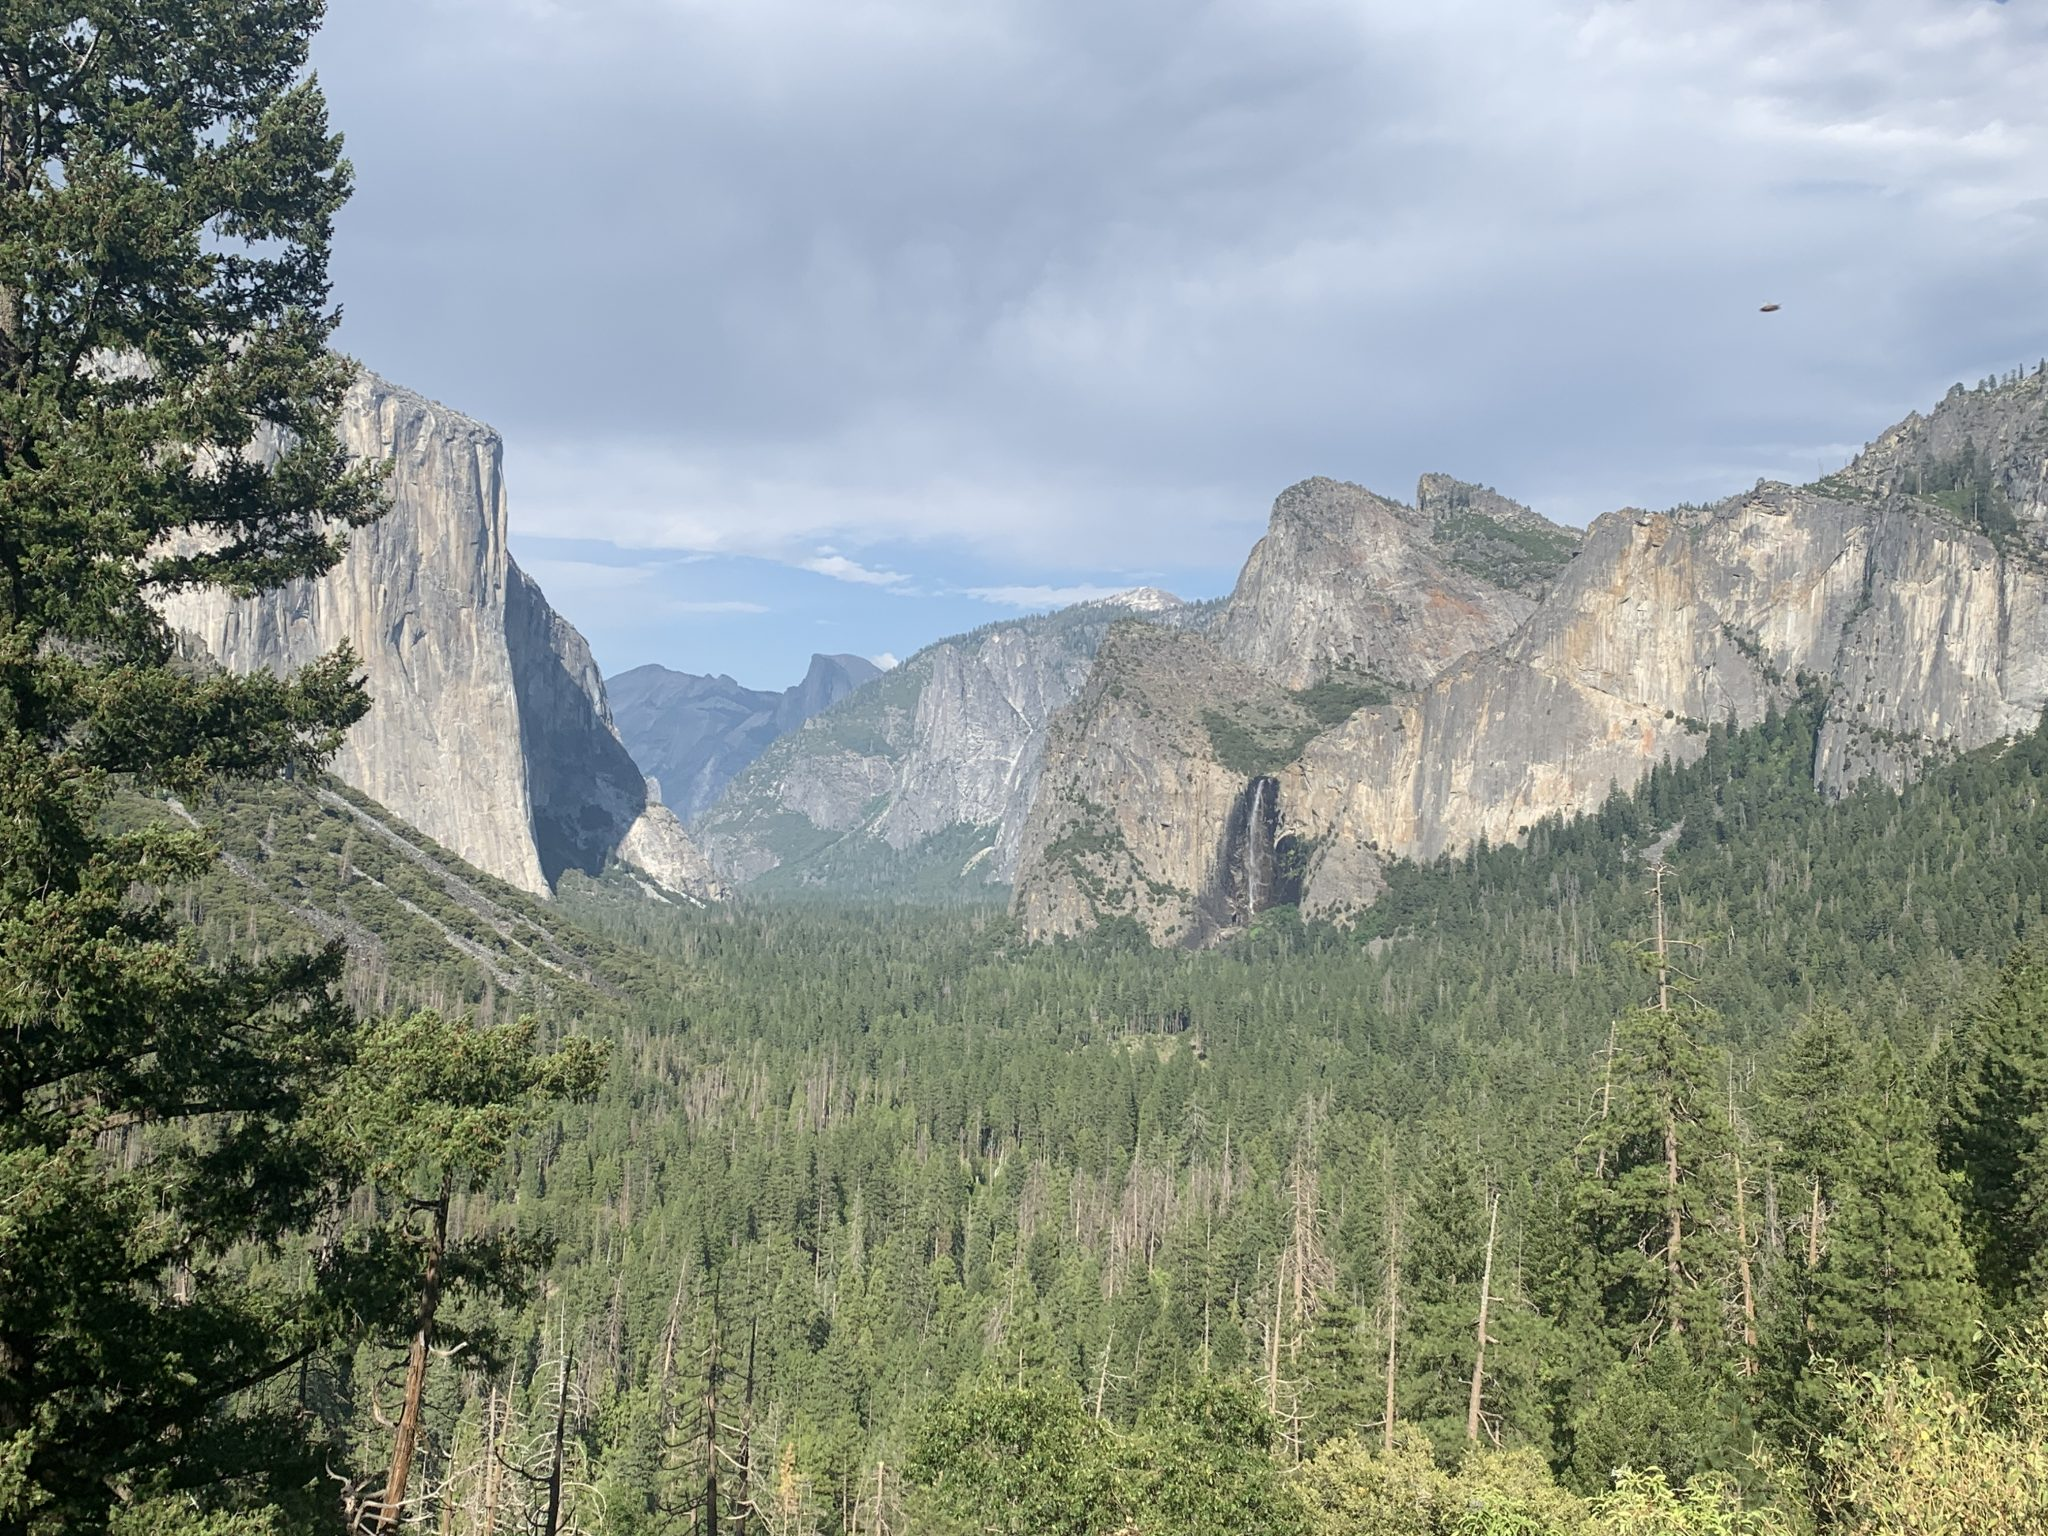 tunnel view and inspiration point in yosemite national park